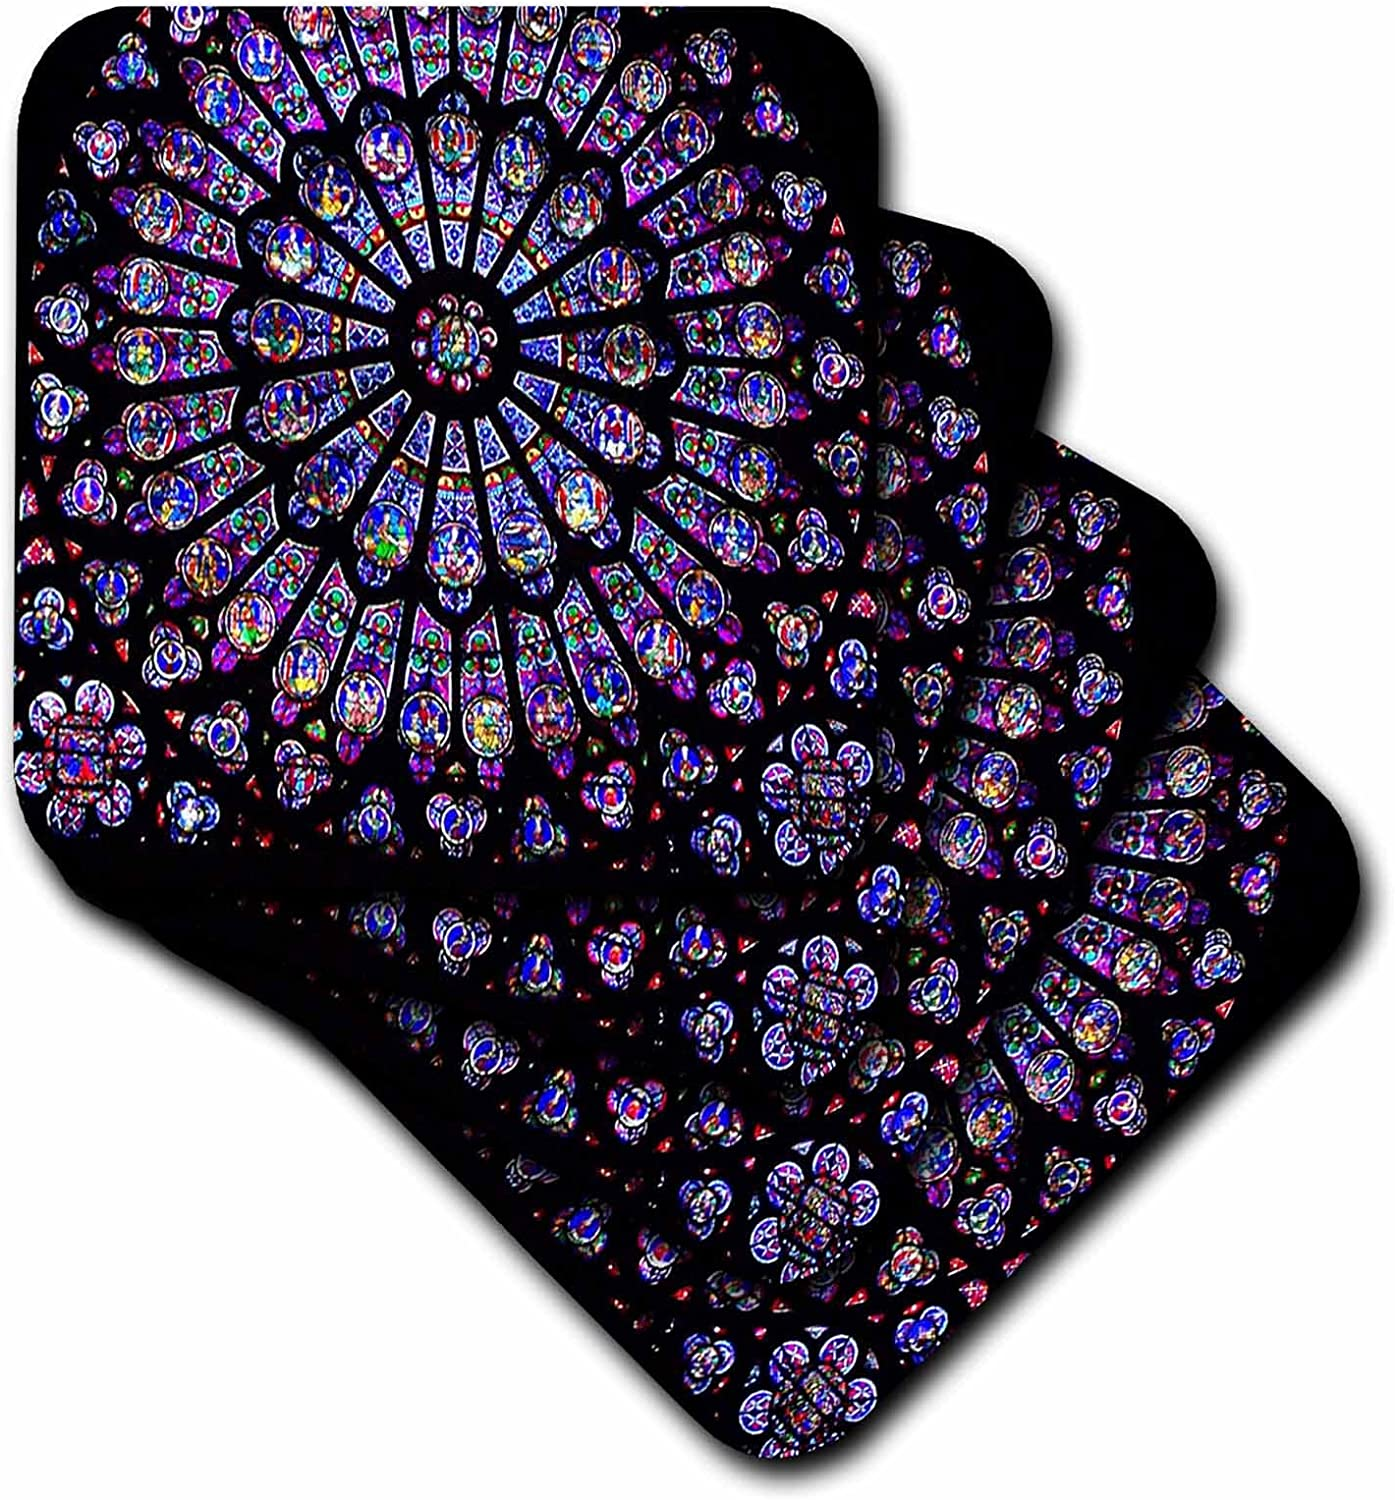 3dRose CST_50227_1 Notre Dame Cathedral Stained Glass Soft Coasters, Set of 4